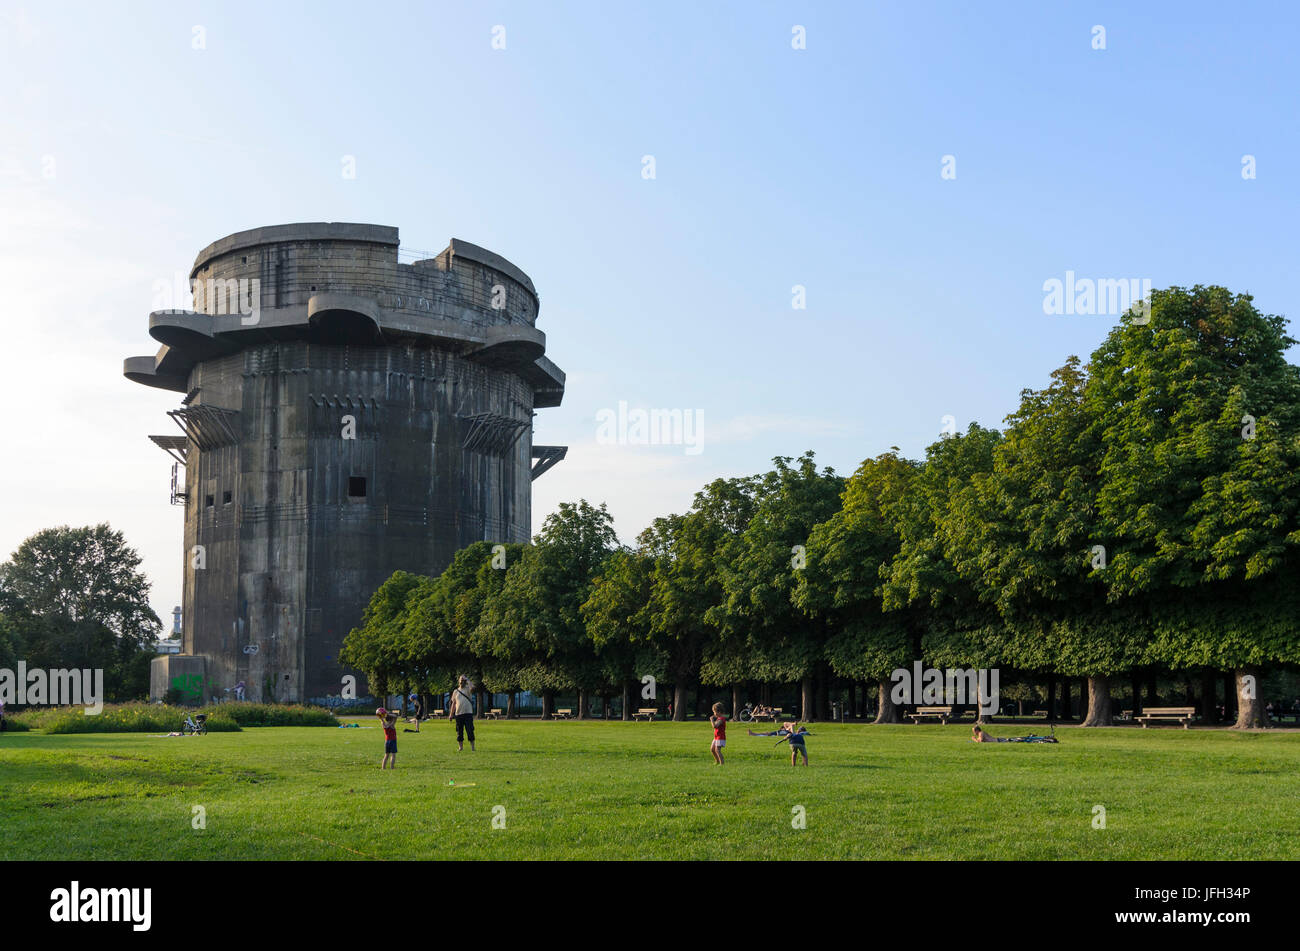 Anti-aircraft tower (battle tower) in the Augarten with having a picnic Viennese, Austria, Vienna 02. Stock Photo